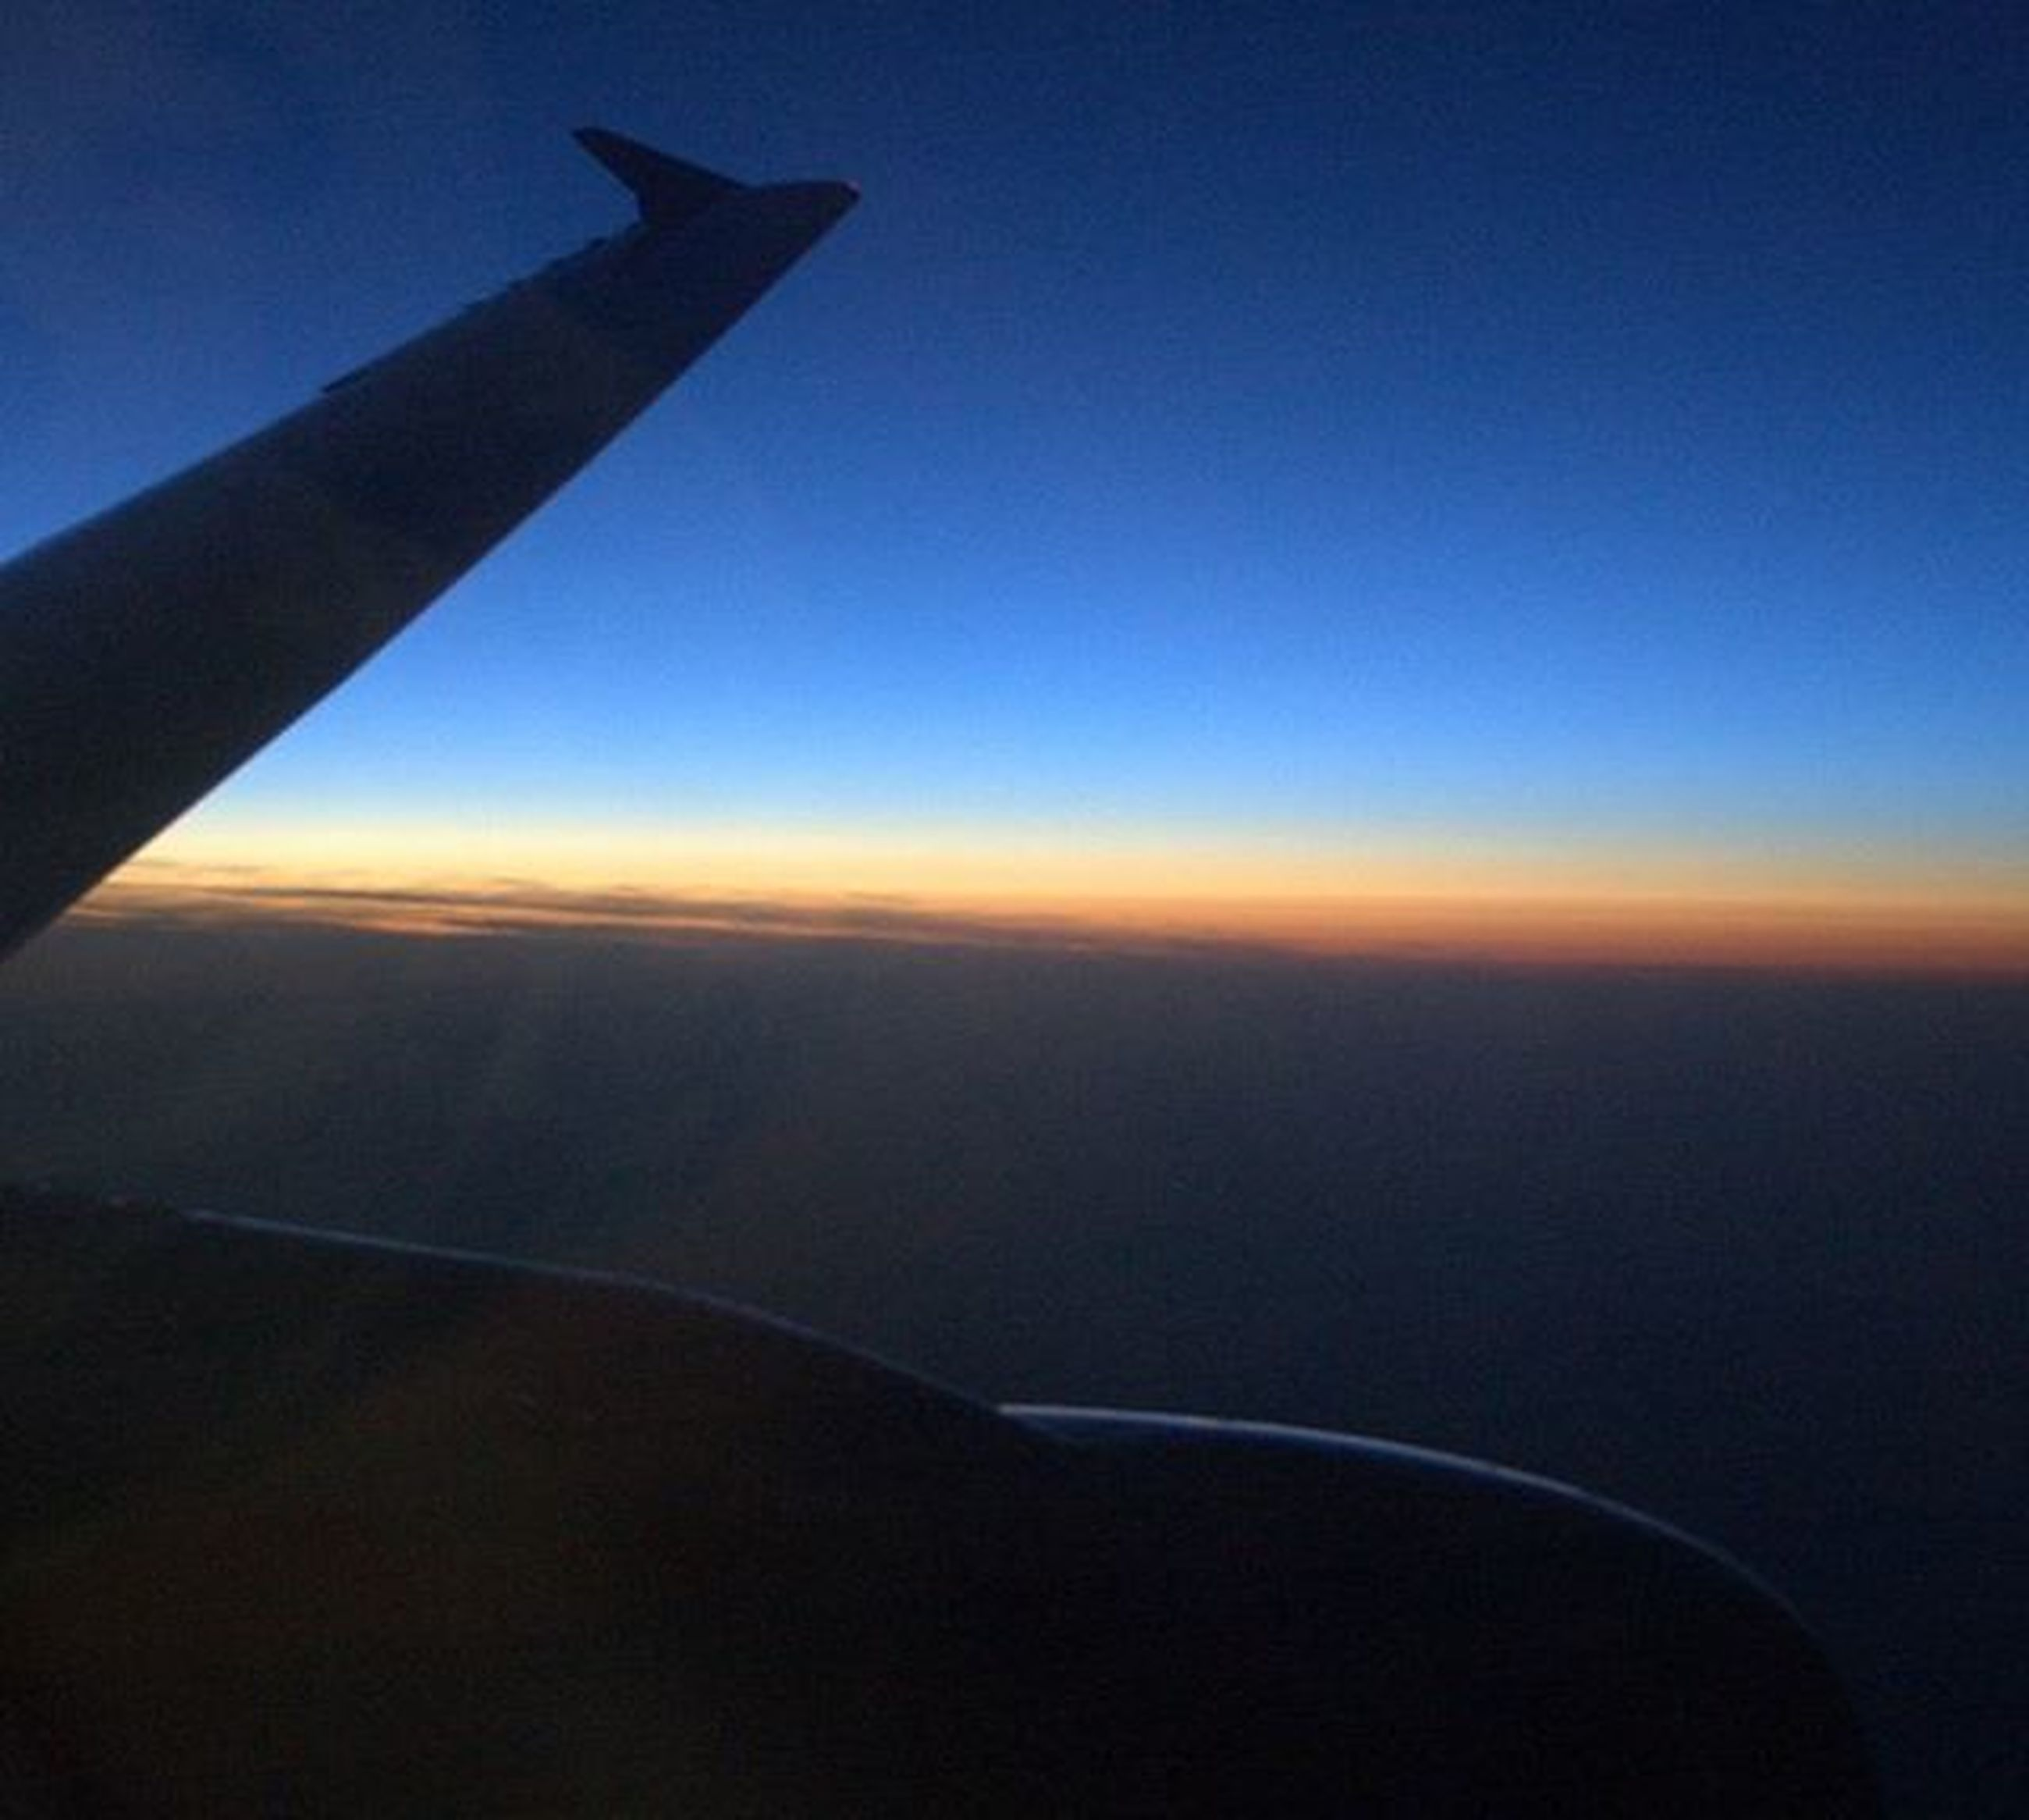 airplane, transportation, air vehicle, aircraft wing, flying, mode of transport, part of, aerial view, cropped, sky, mid-air, travel, journey, scenics, landscape, sunset, beauty in nature, on the move, public transportation, blue